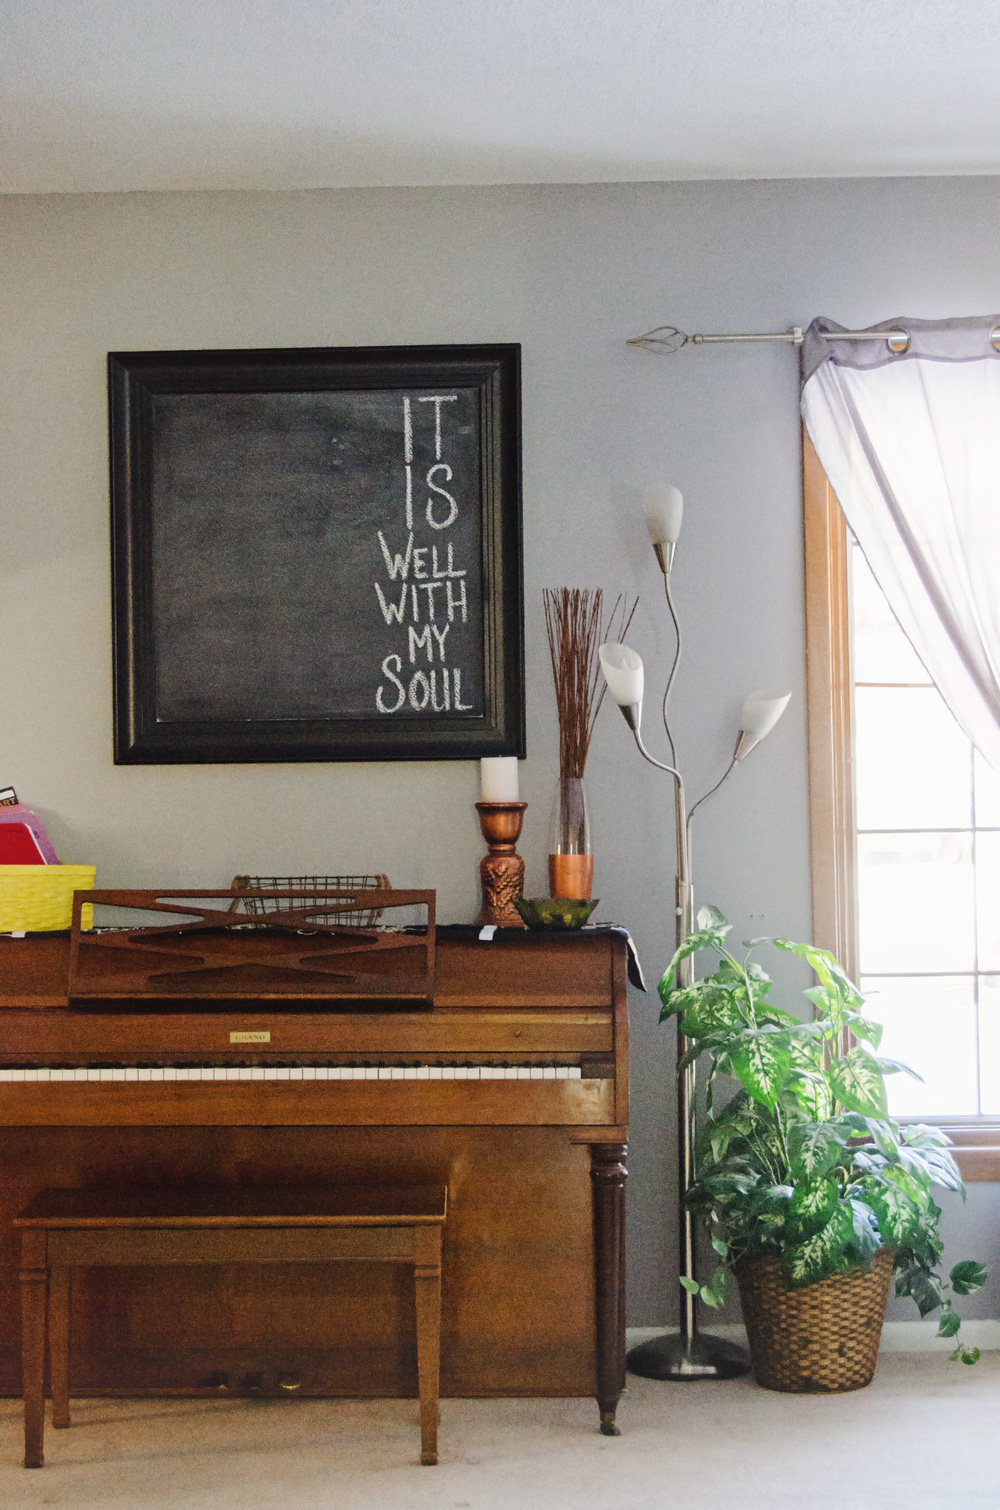 Framed chalkboard as wall decor hanging over a piano. | hprallandco.com